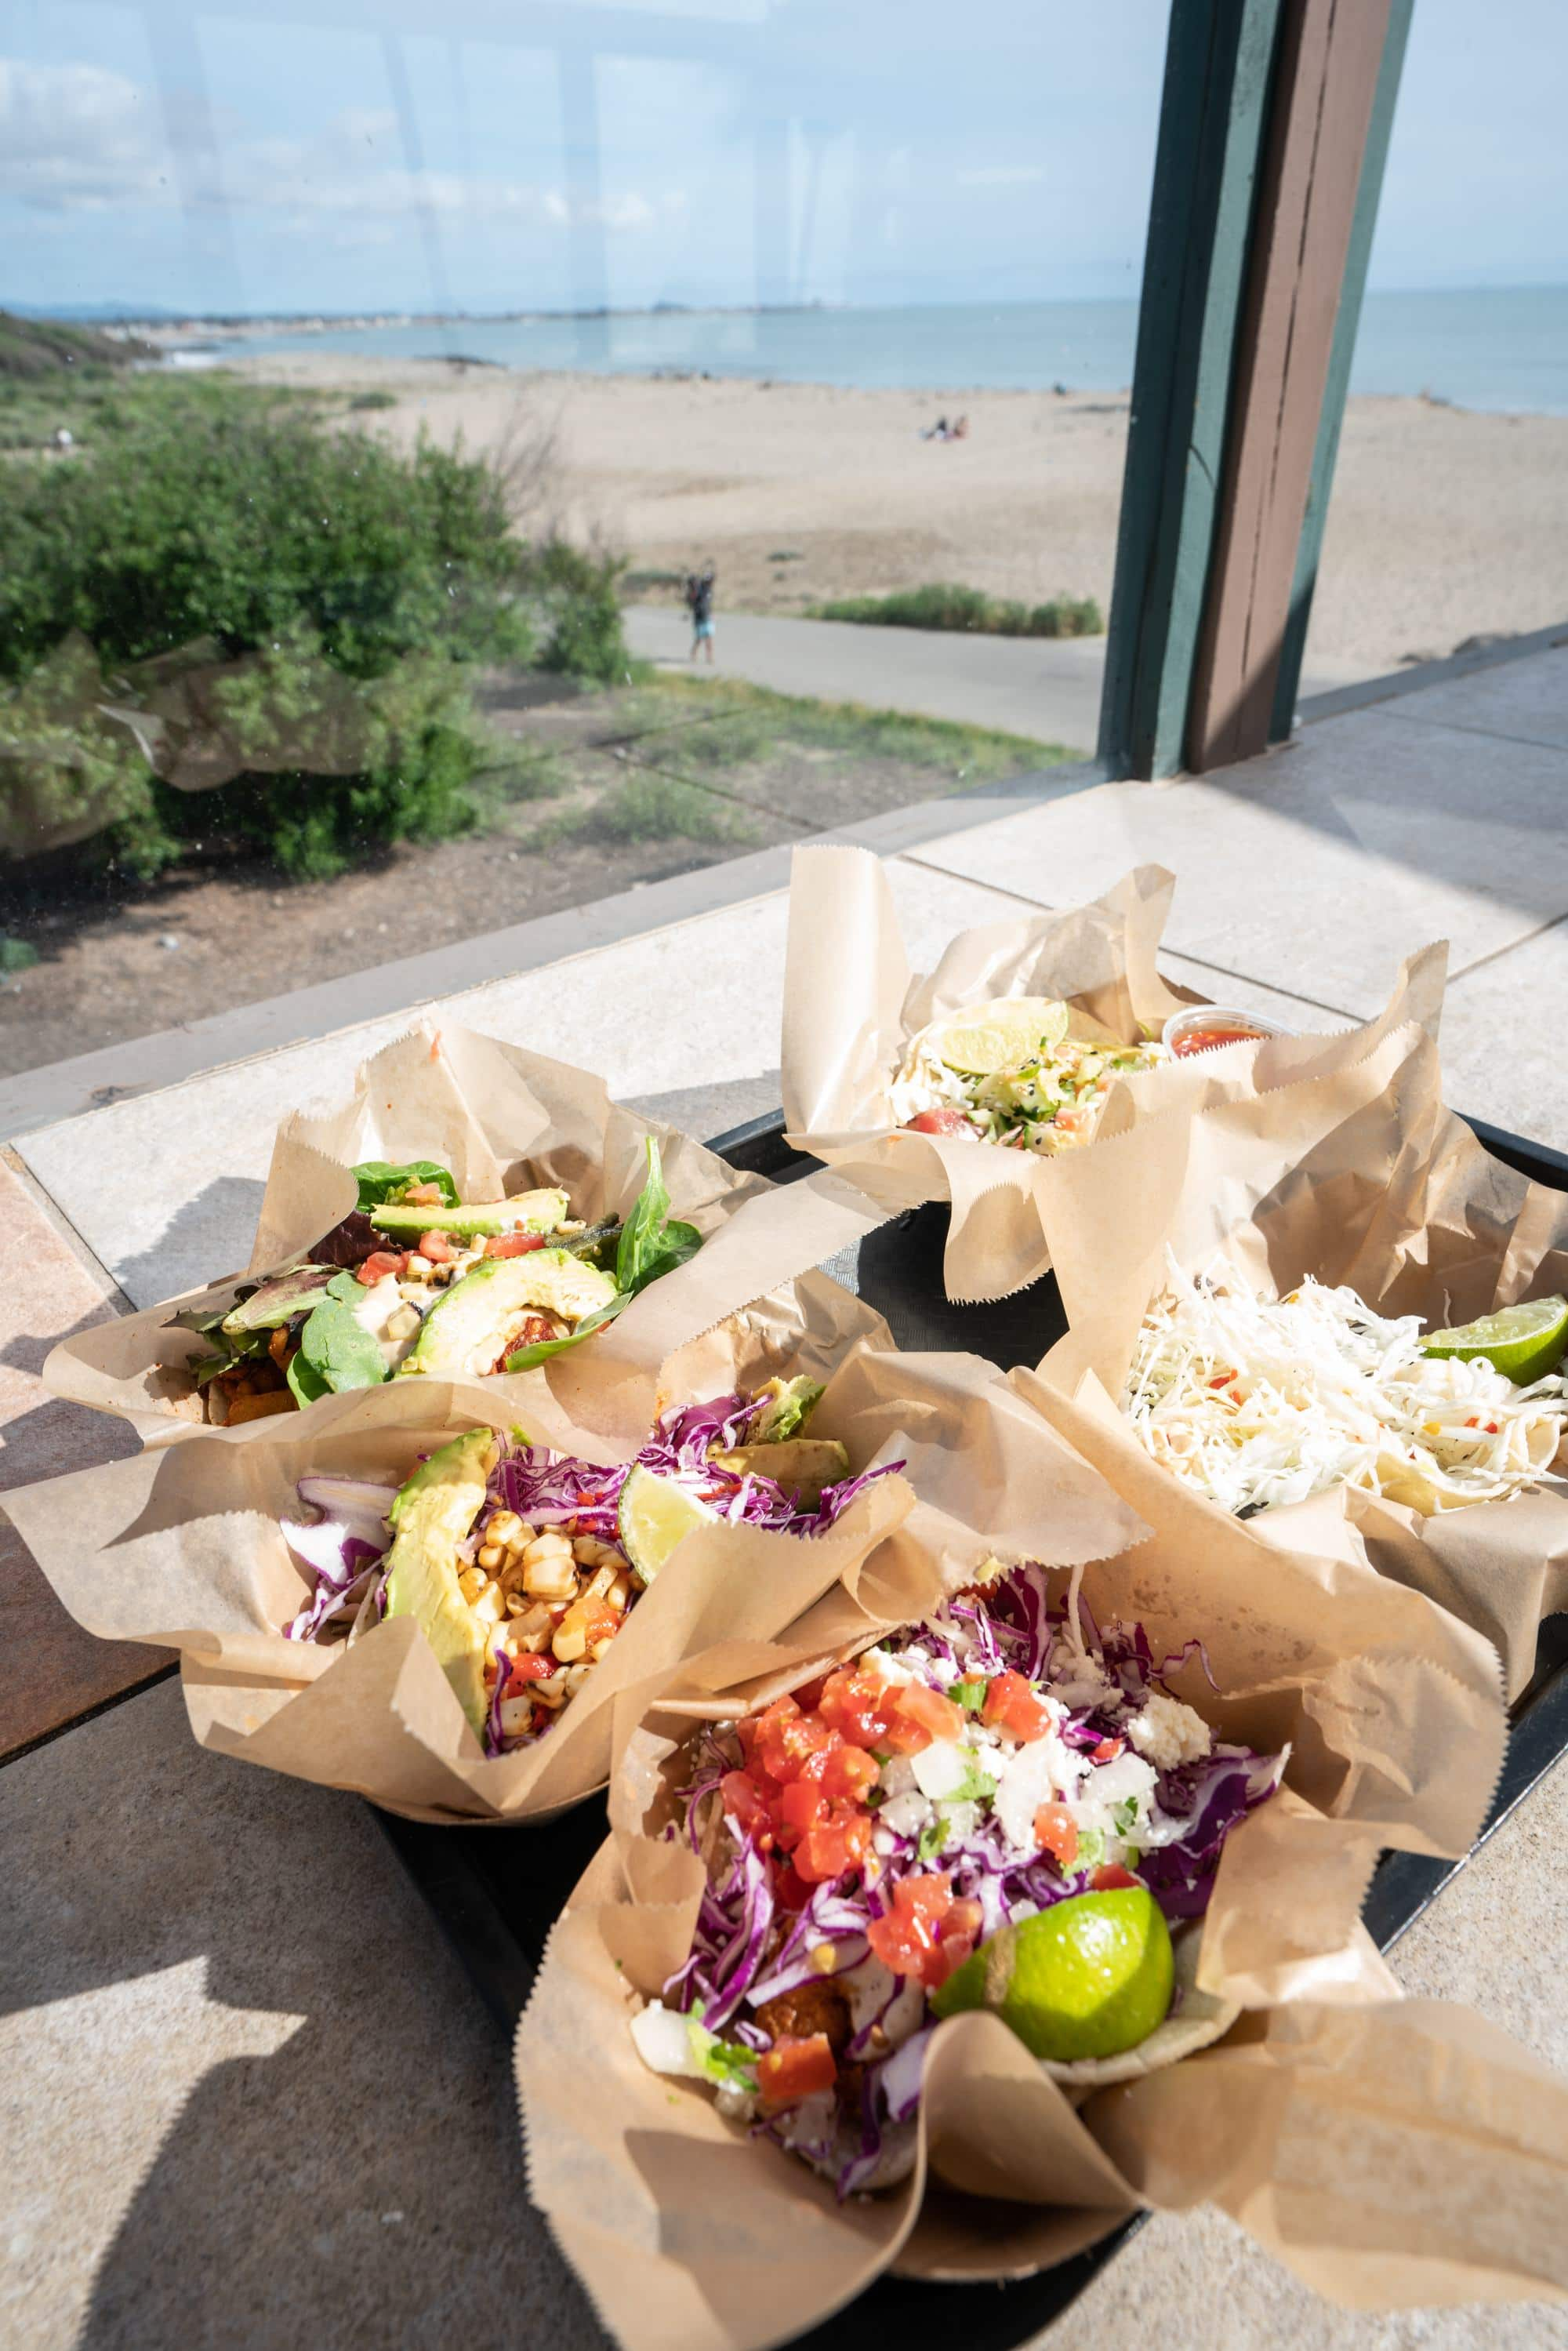 Ventura tacos // A 6 day california coast road trip itinerary that combines outdoor adventure travel and local California beach town culture.